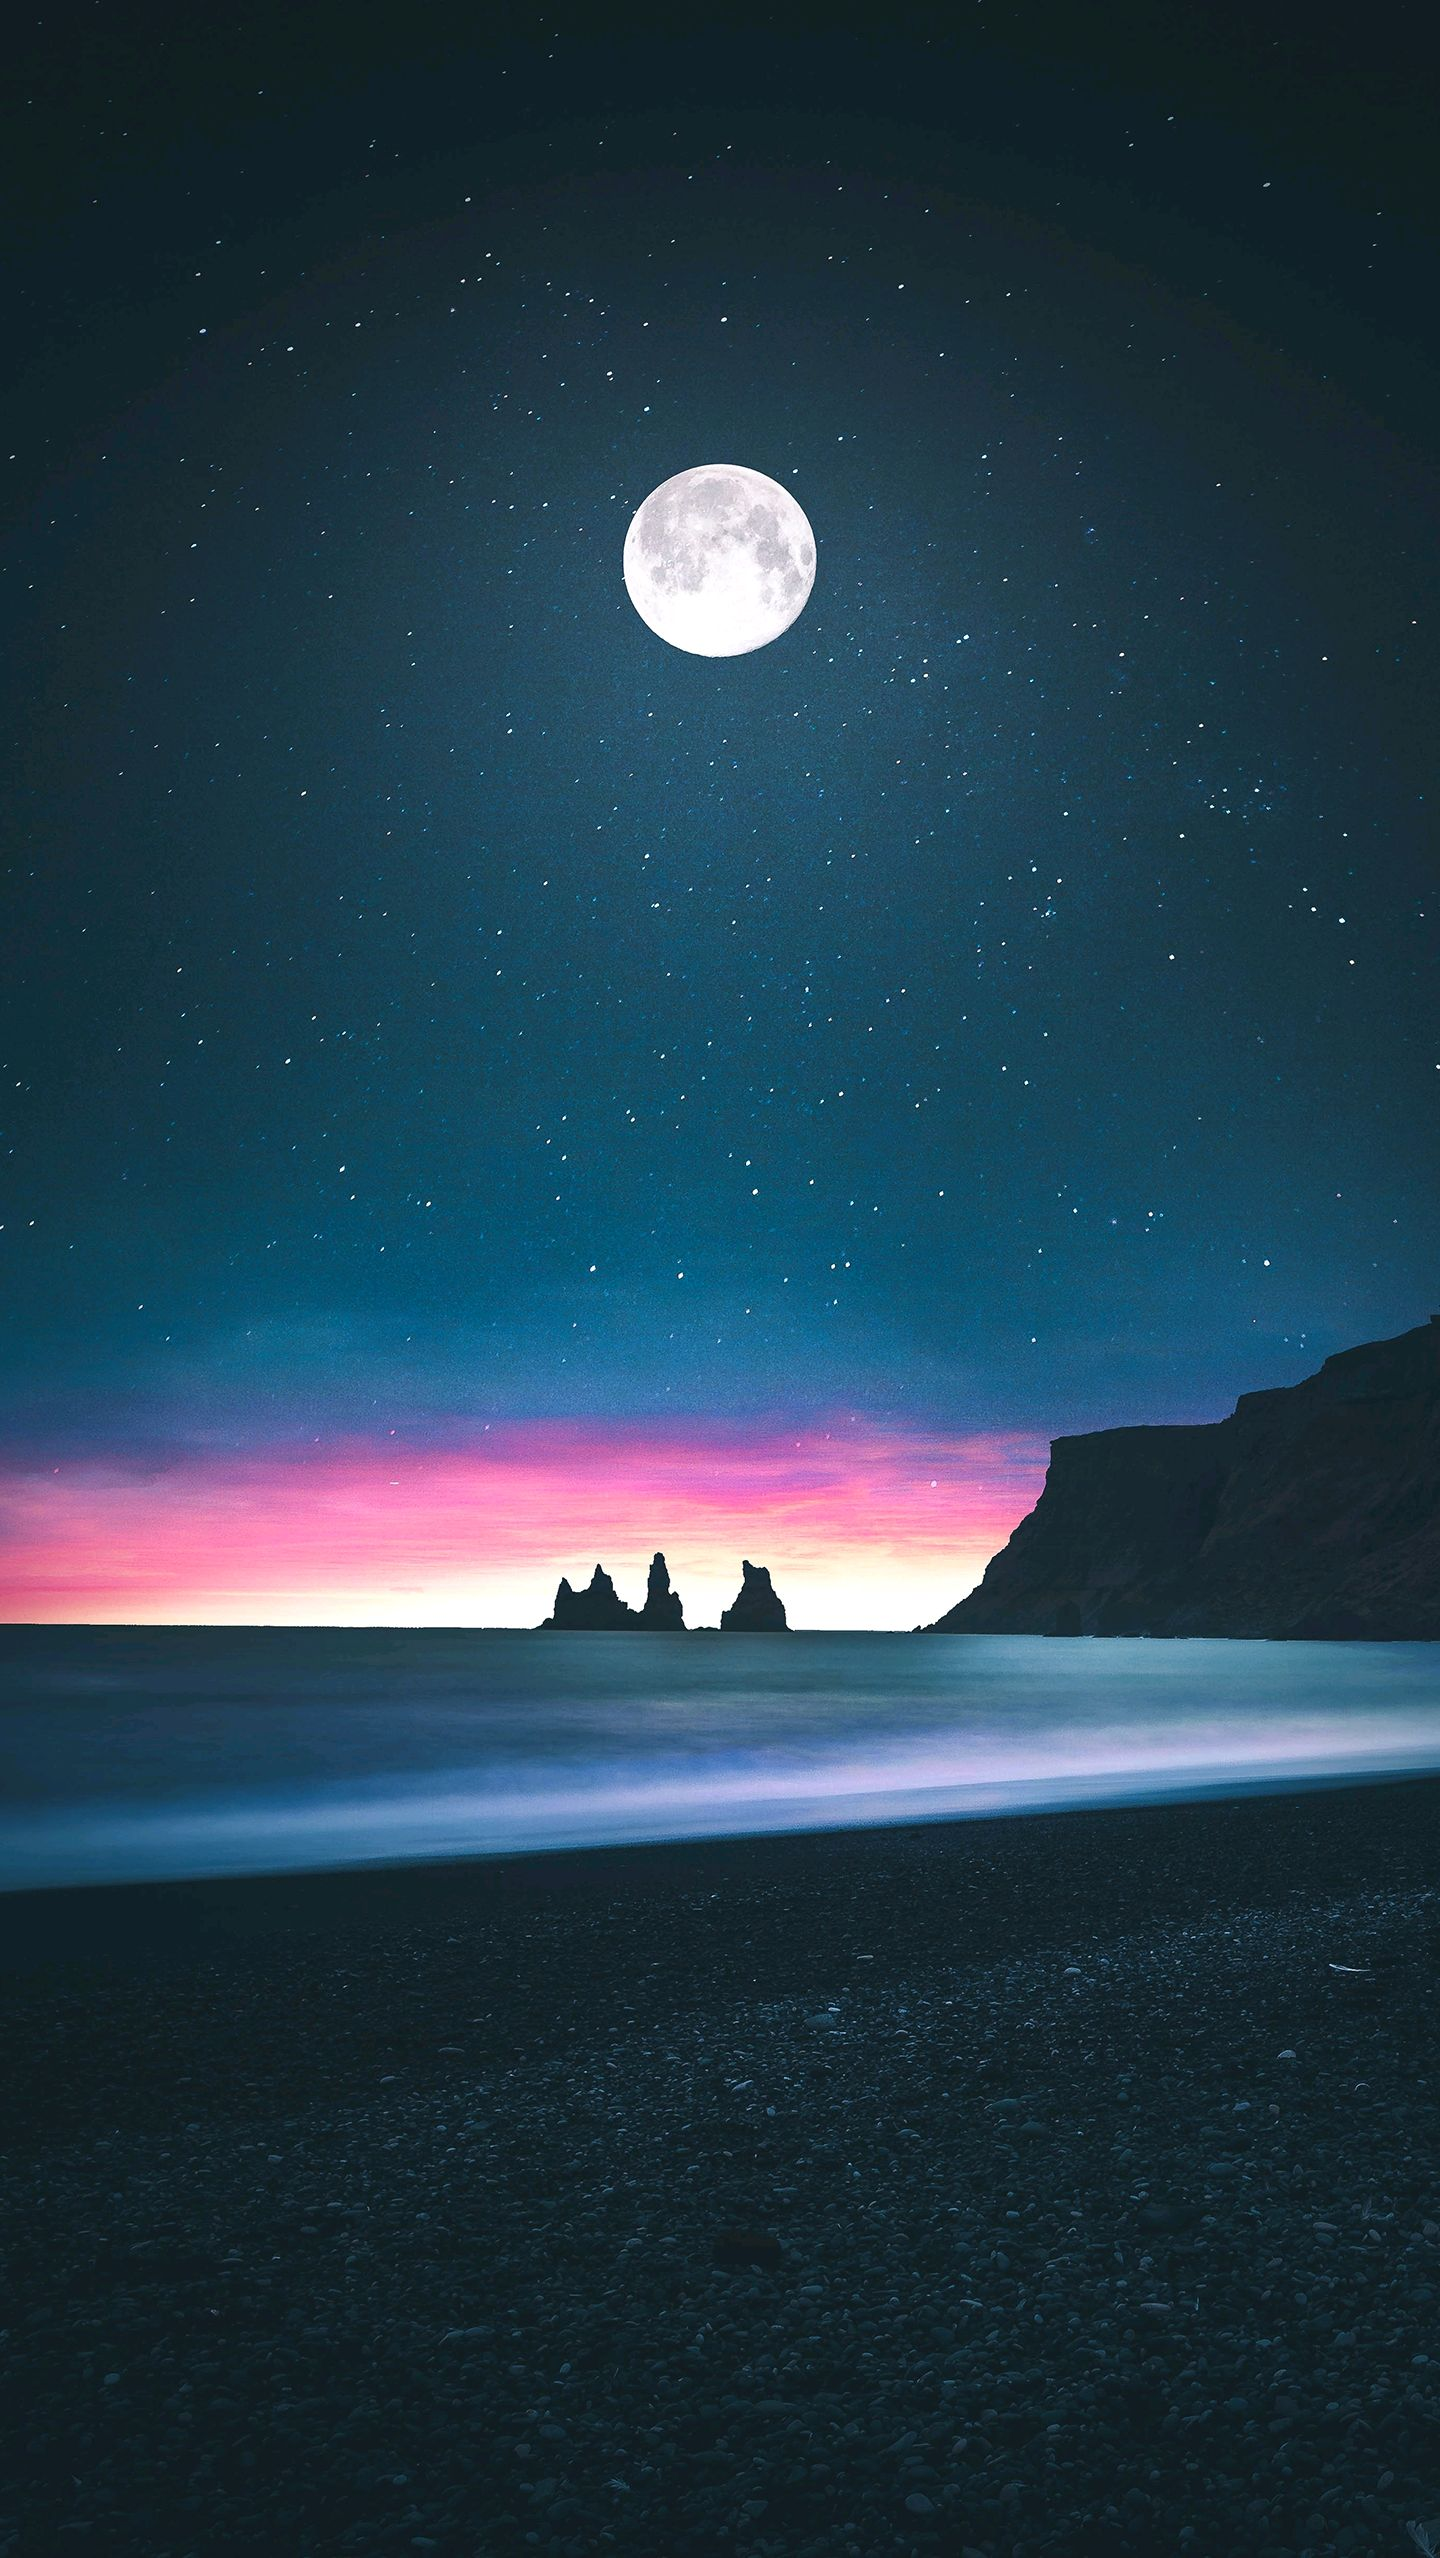 Black Girly Wallpapers For Iphone Beach Moon Horizon Low Tides Iphone Wallpaper Iphone